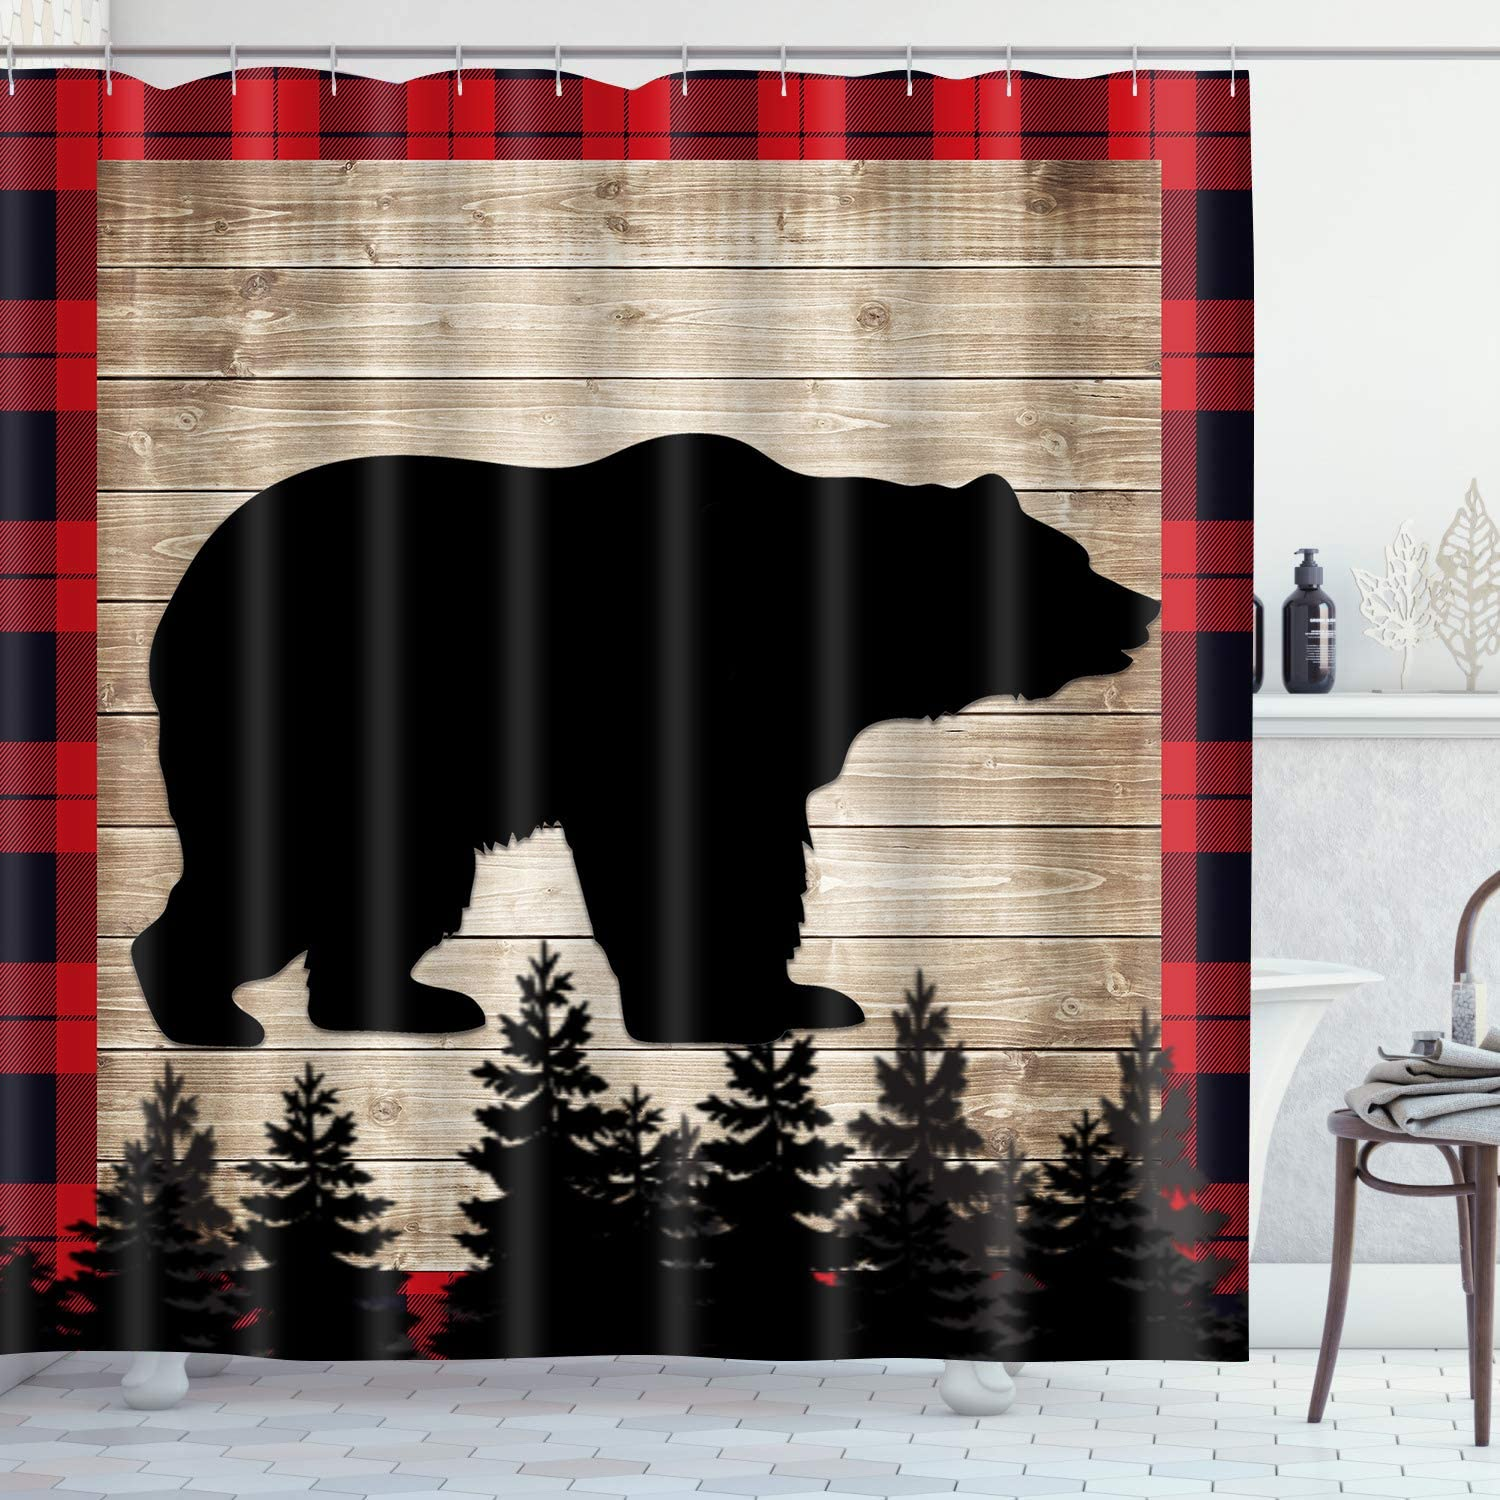 Black Bear Shower Curtain Rustic Plank Red Square Bathroom Curtain for Decor 72x72in Waterproof Polyester Fabric with 12 Hooks YLLSGE410